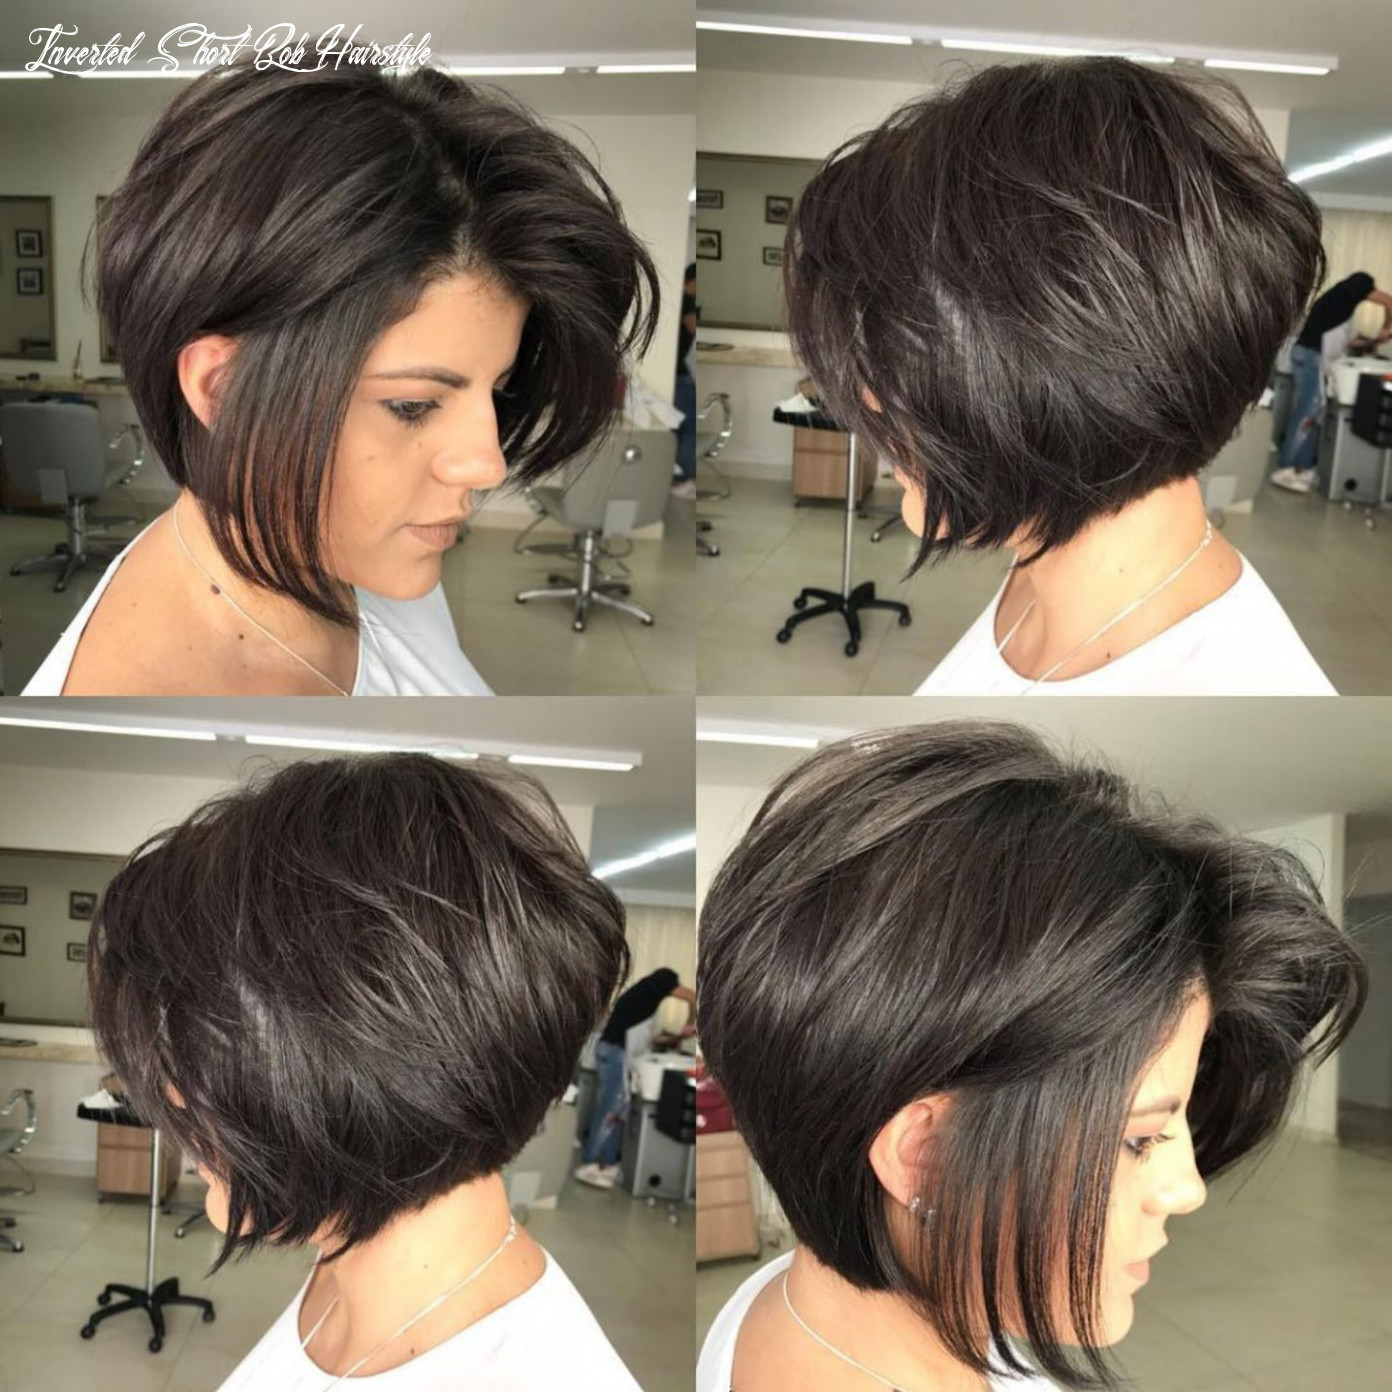 Pin on my style inverted short bob hairstyle